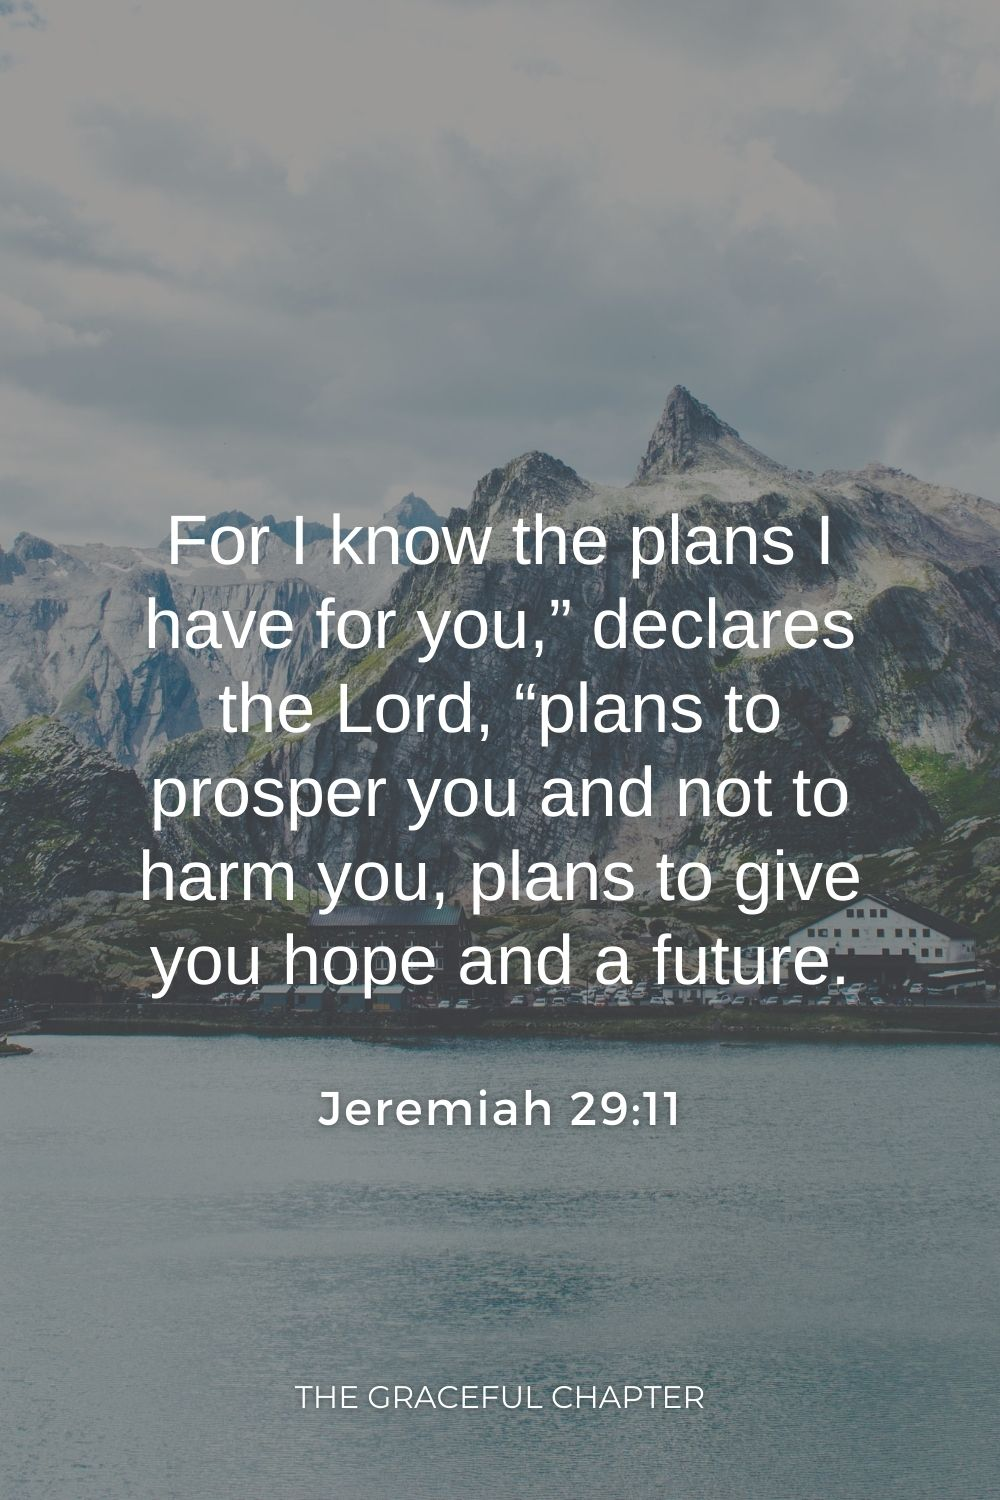 """For I know the plans I have for you,"""" declares the Lord, """"plans to prosper you and not to harm you, plans to give you hope and a future. Jeremiah 29:11"""